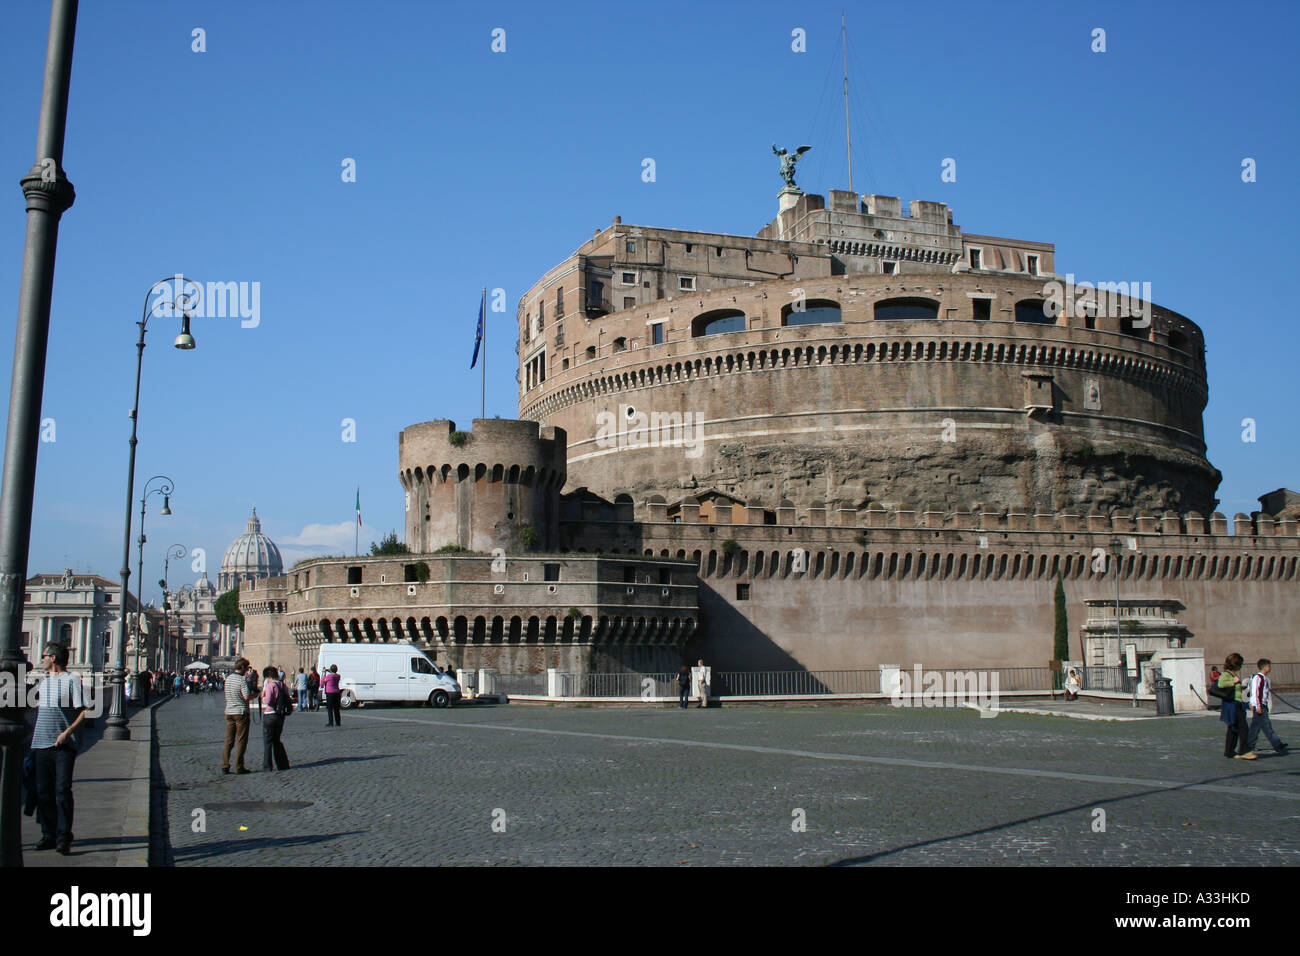 Castel Sant'Angelo fortress close to Vatican City in Rome, Lazio, Italy - Stock Image